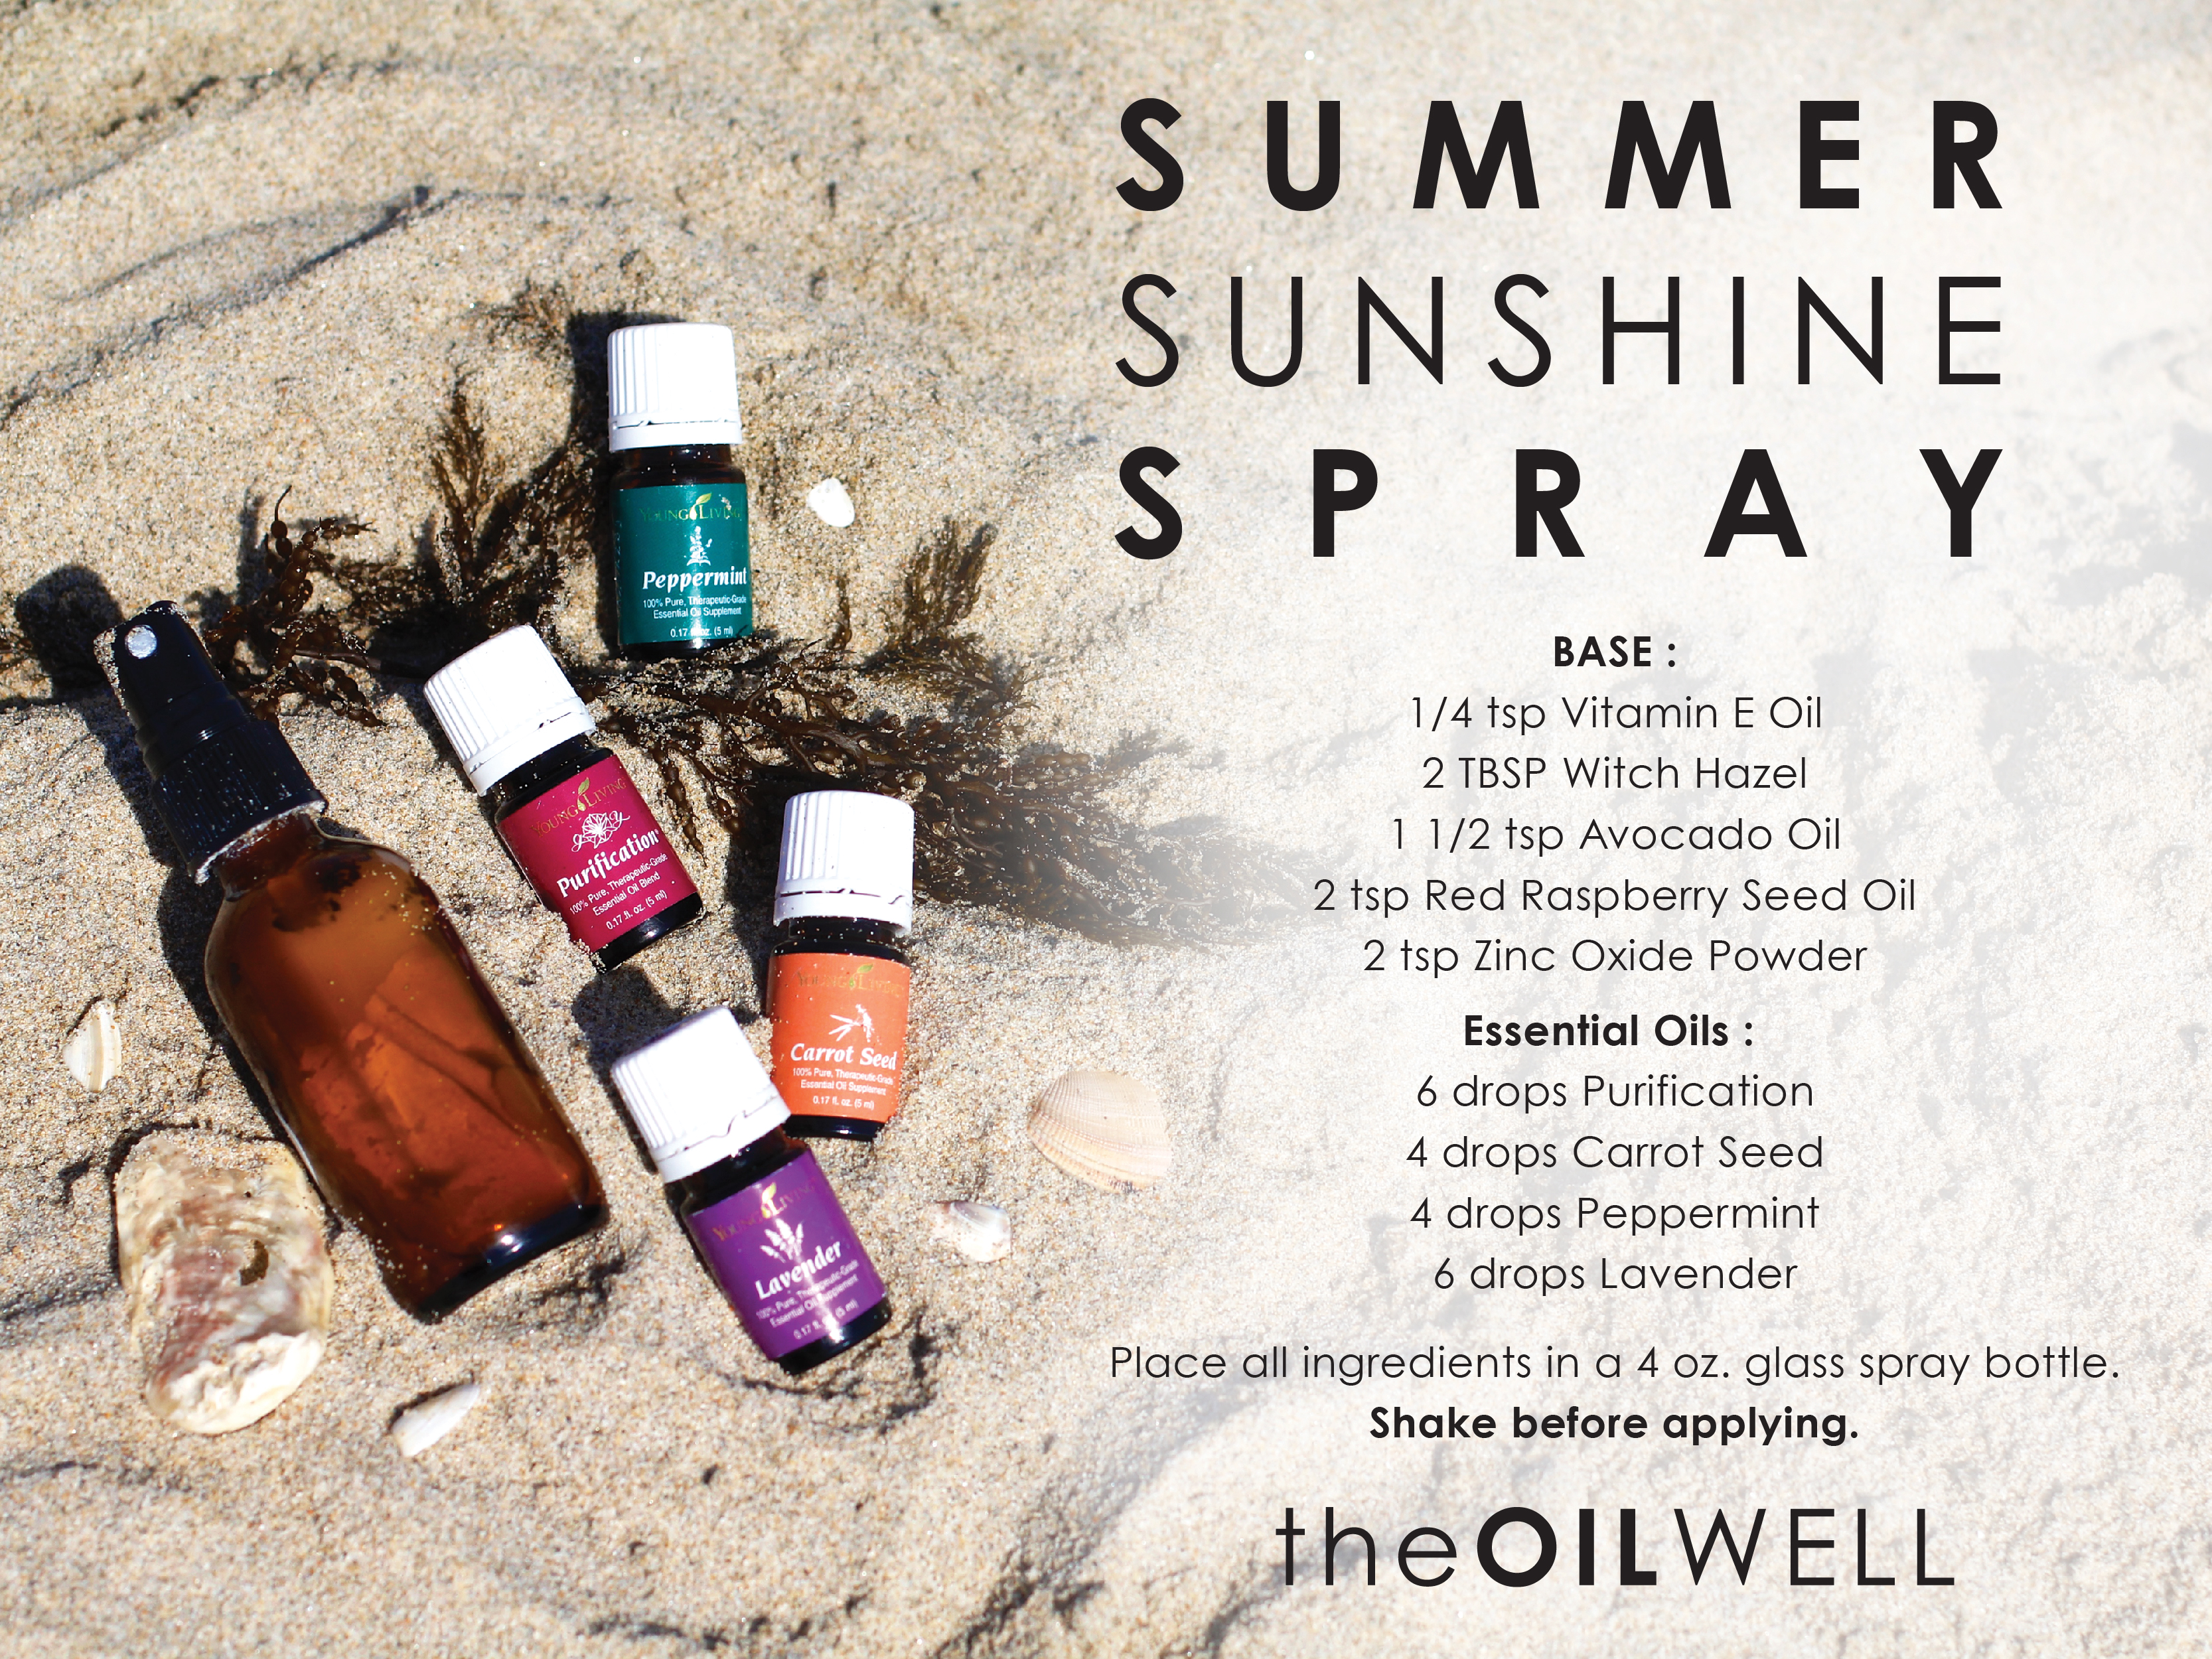 Summer Sunshine Spray with Natural SPF